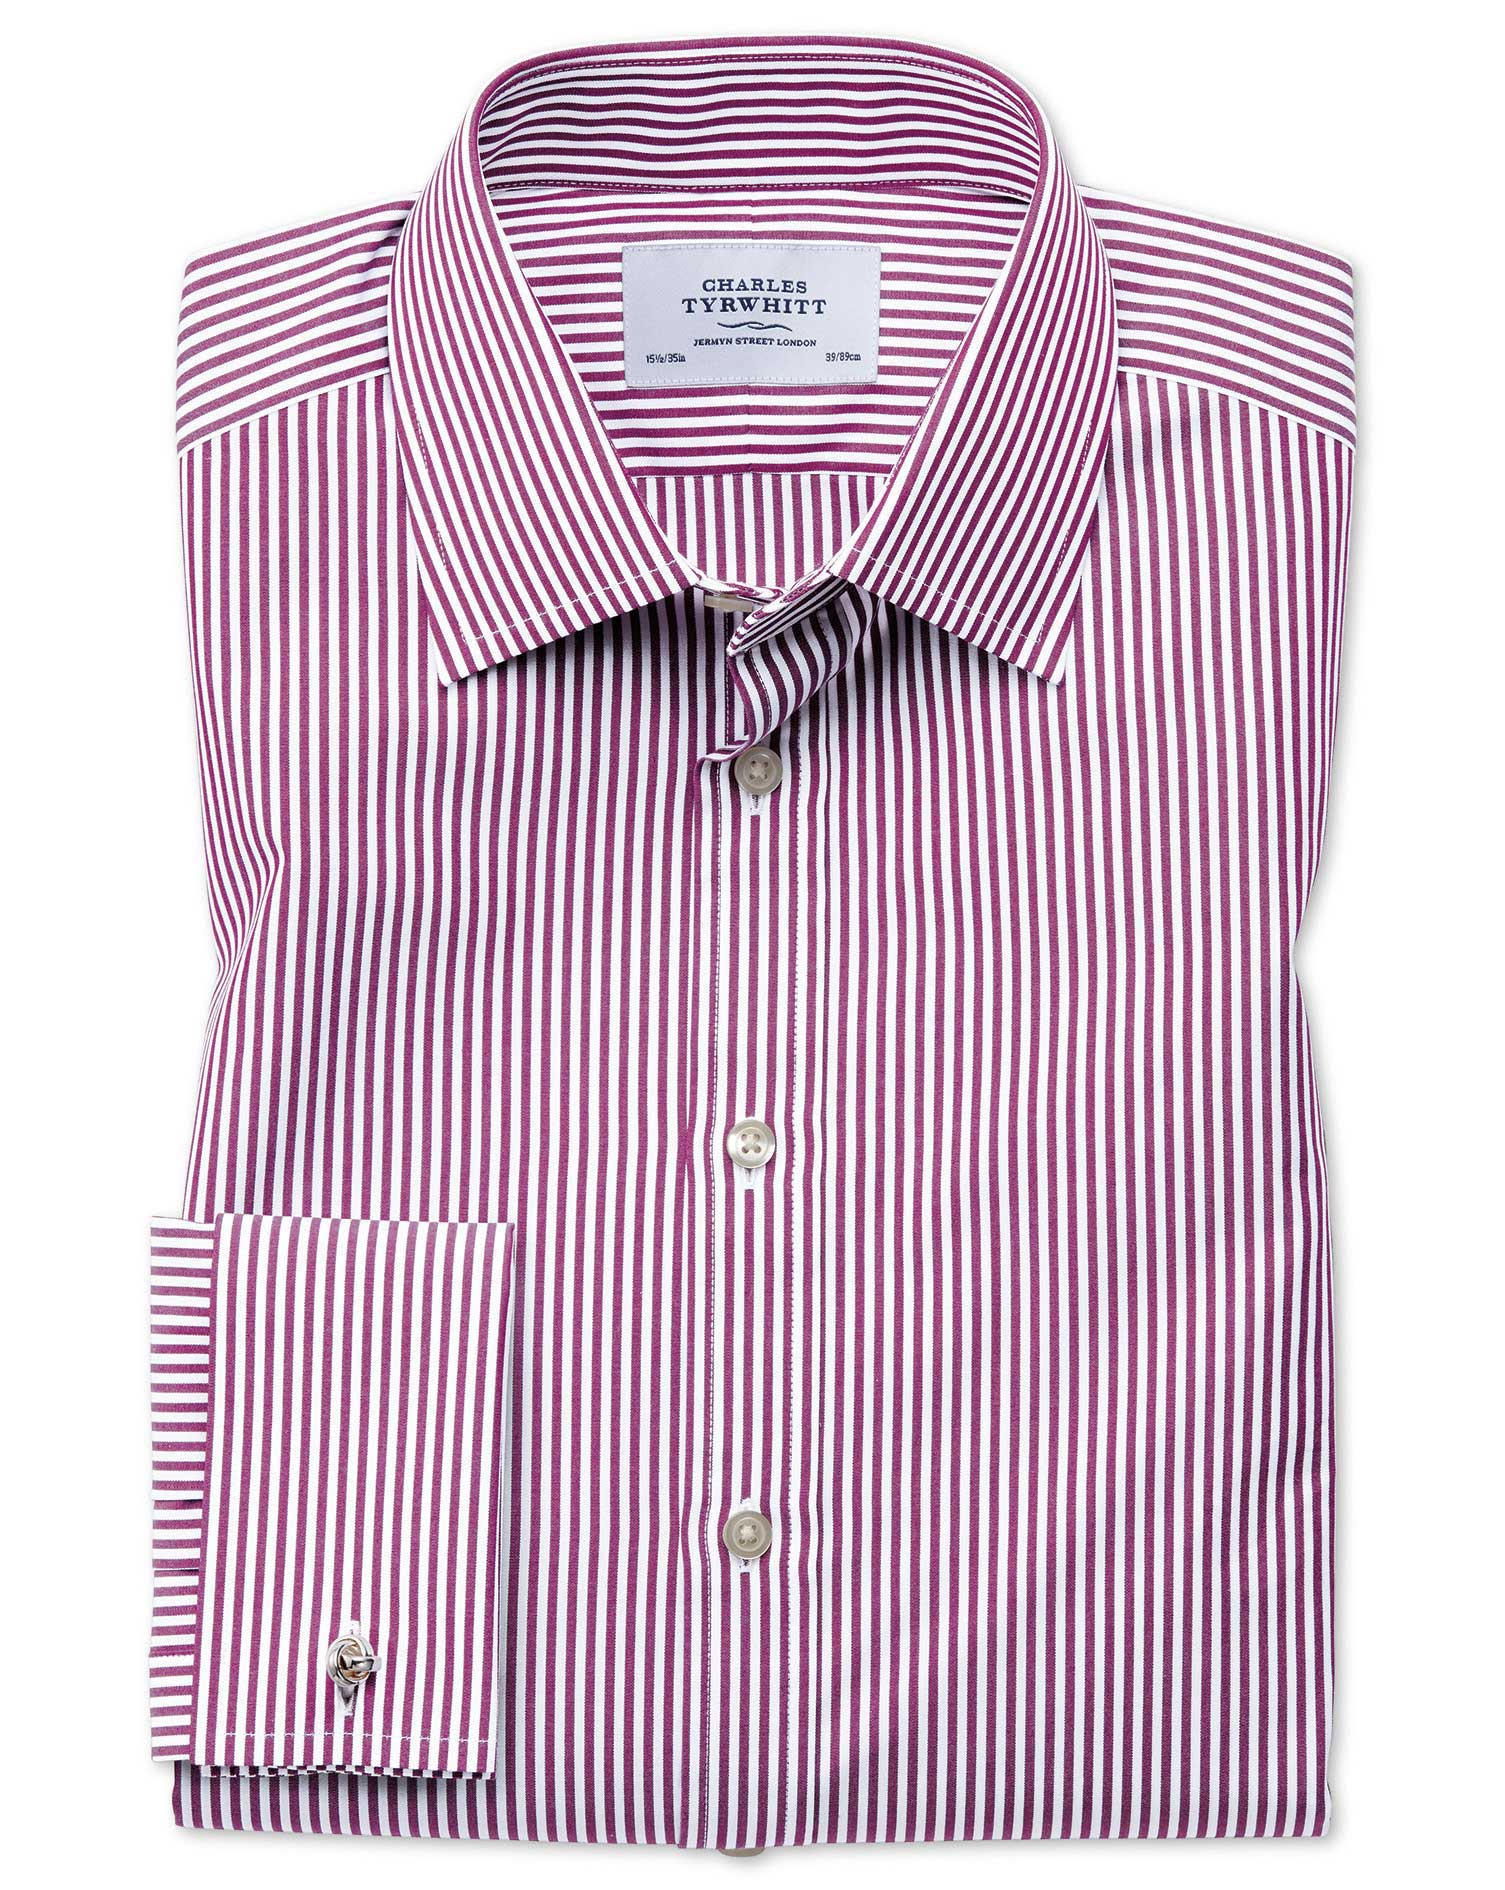 Classic Fit Bengal Stripe Purple Cotton Formal Shirt Double Cuff Size 18/35 by Charles Tyrwhitt